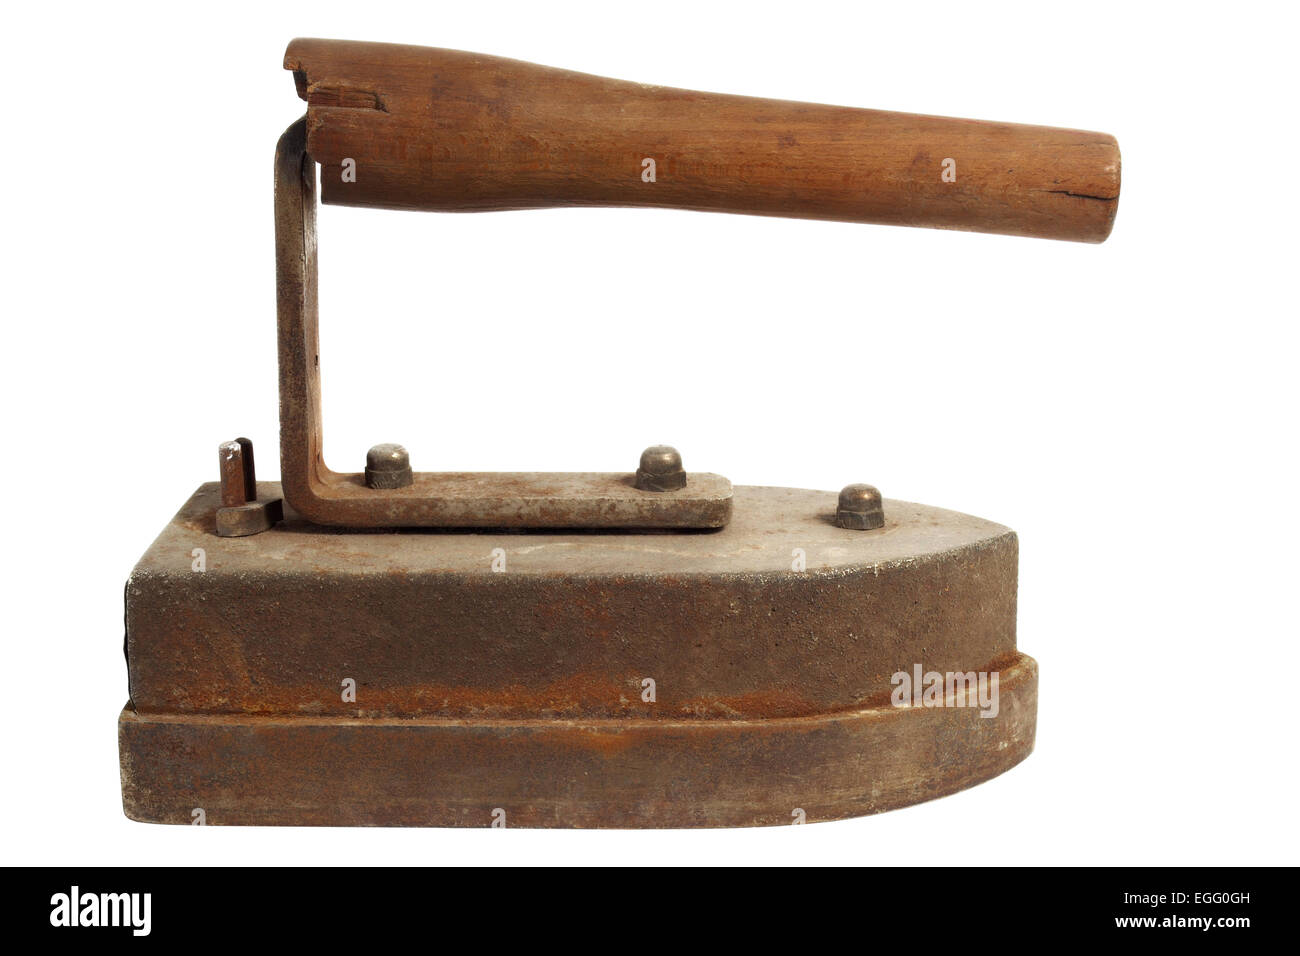 Antique rusty electric iron isolated on white background - Stock Image